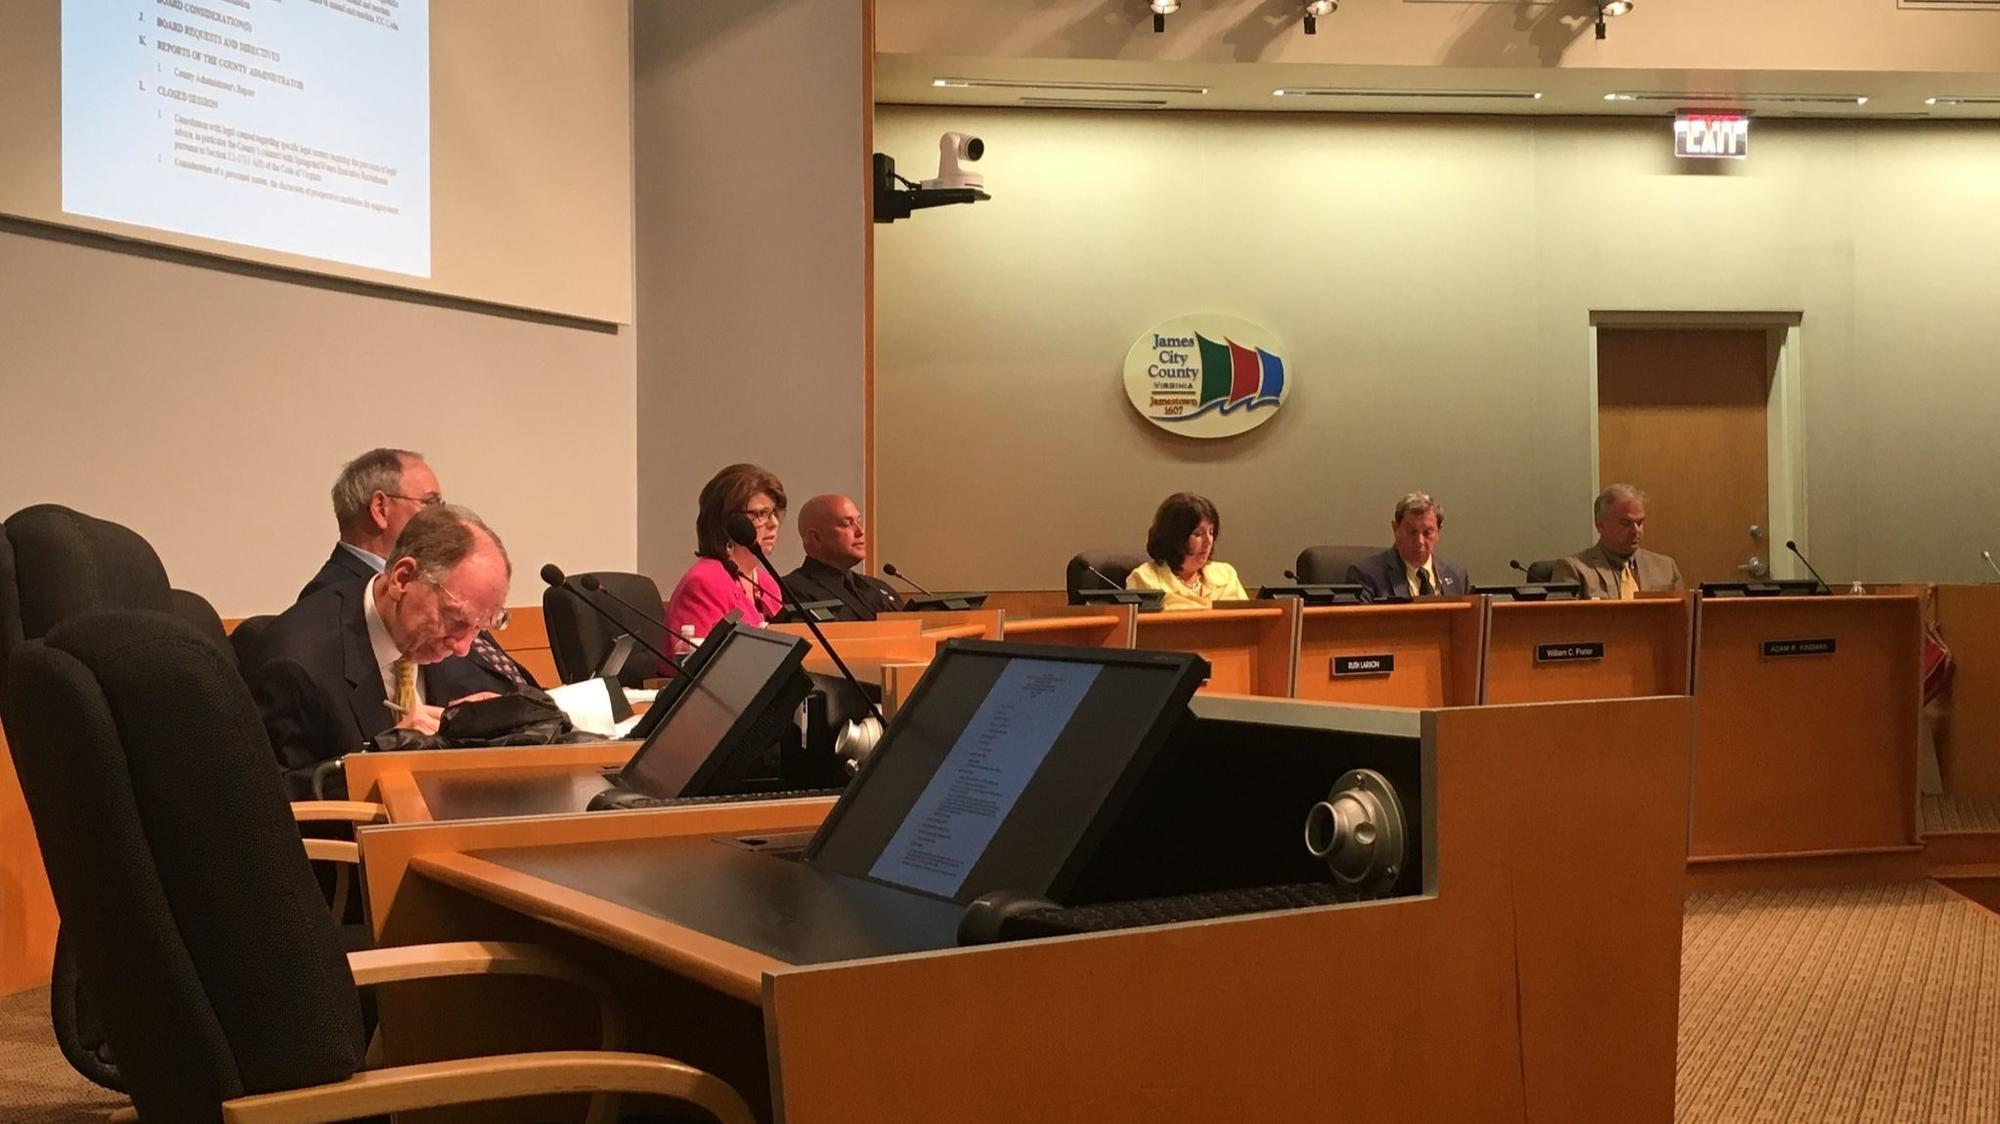 Supervisors approve waiver for Busch Gardens attraction - The ...